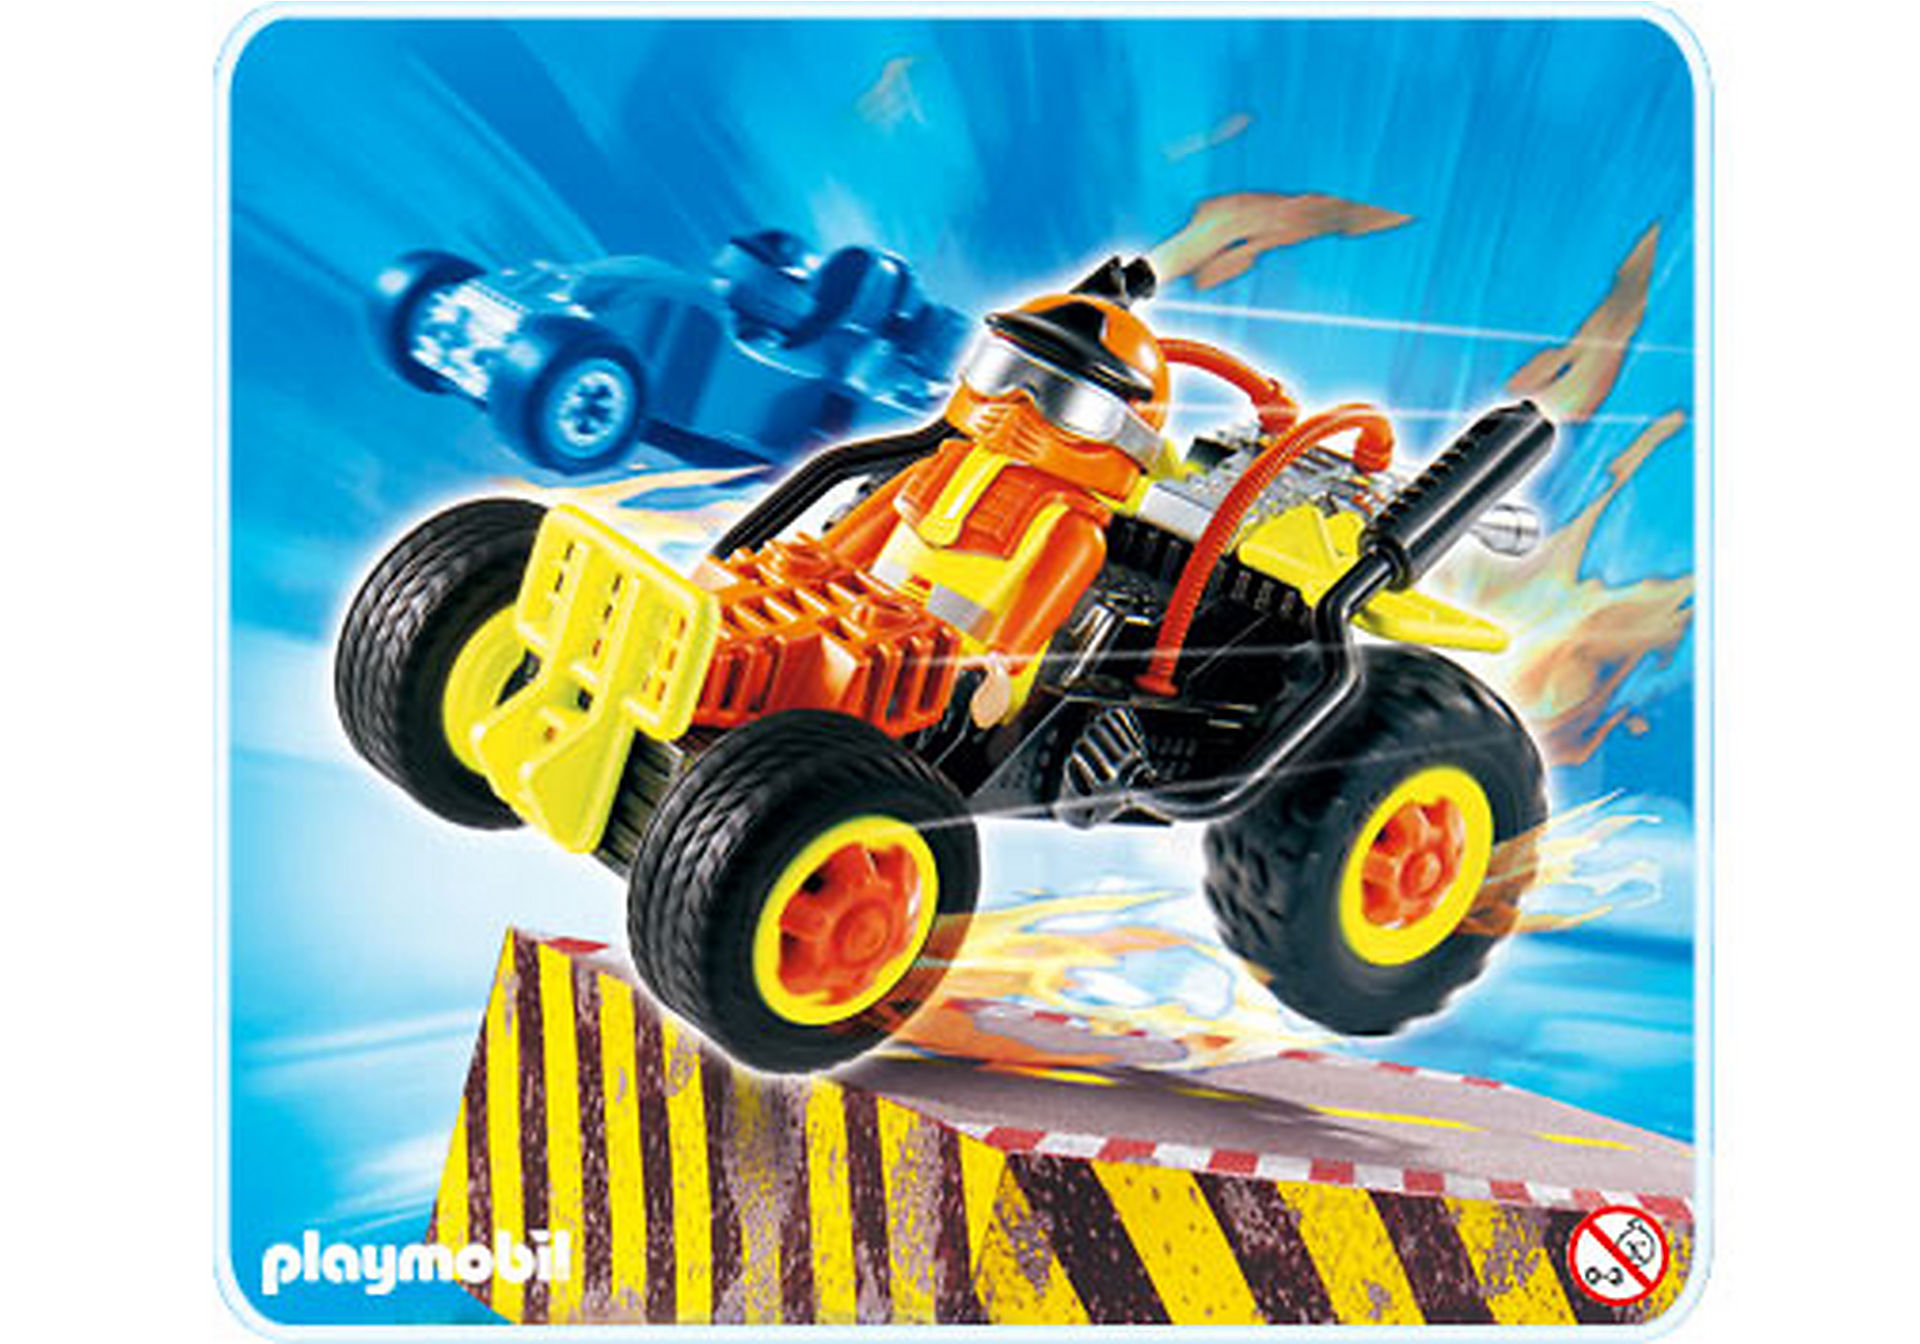 http://media.playmobil.com/i/playmobil/4182-A_product_detail/Pilote avec voiture transformable jaune